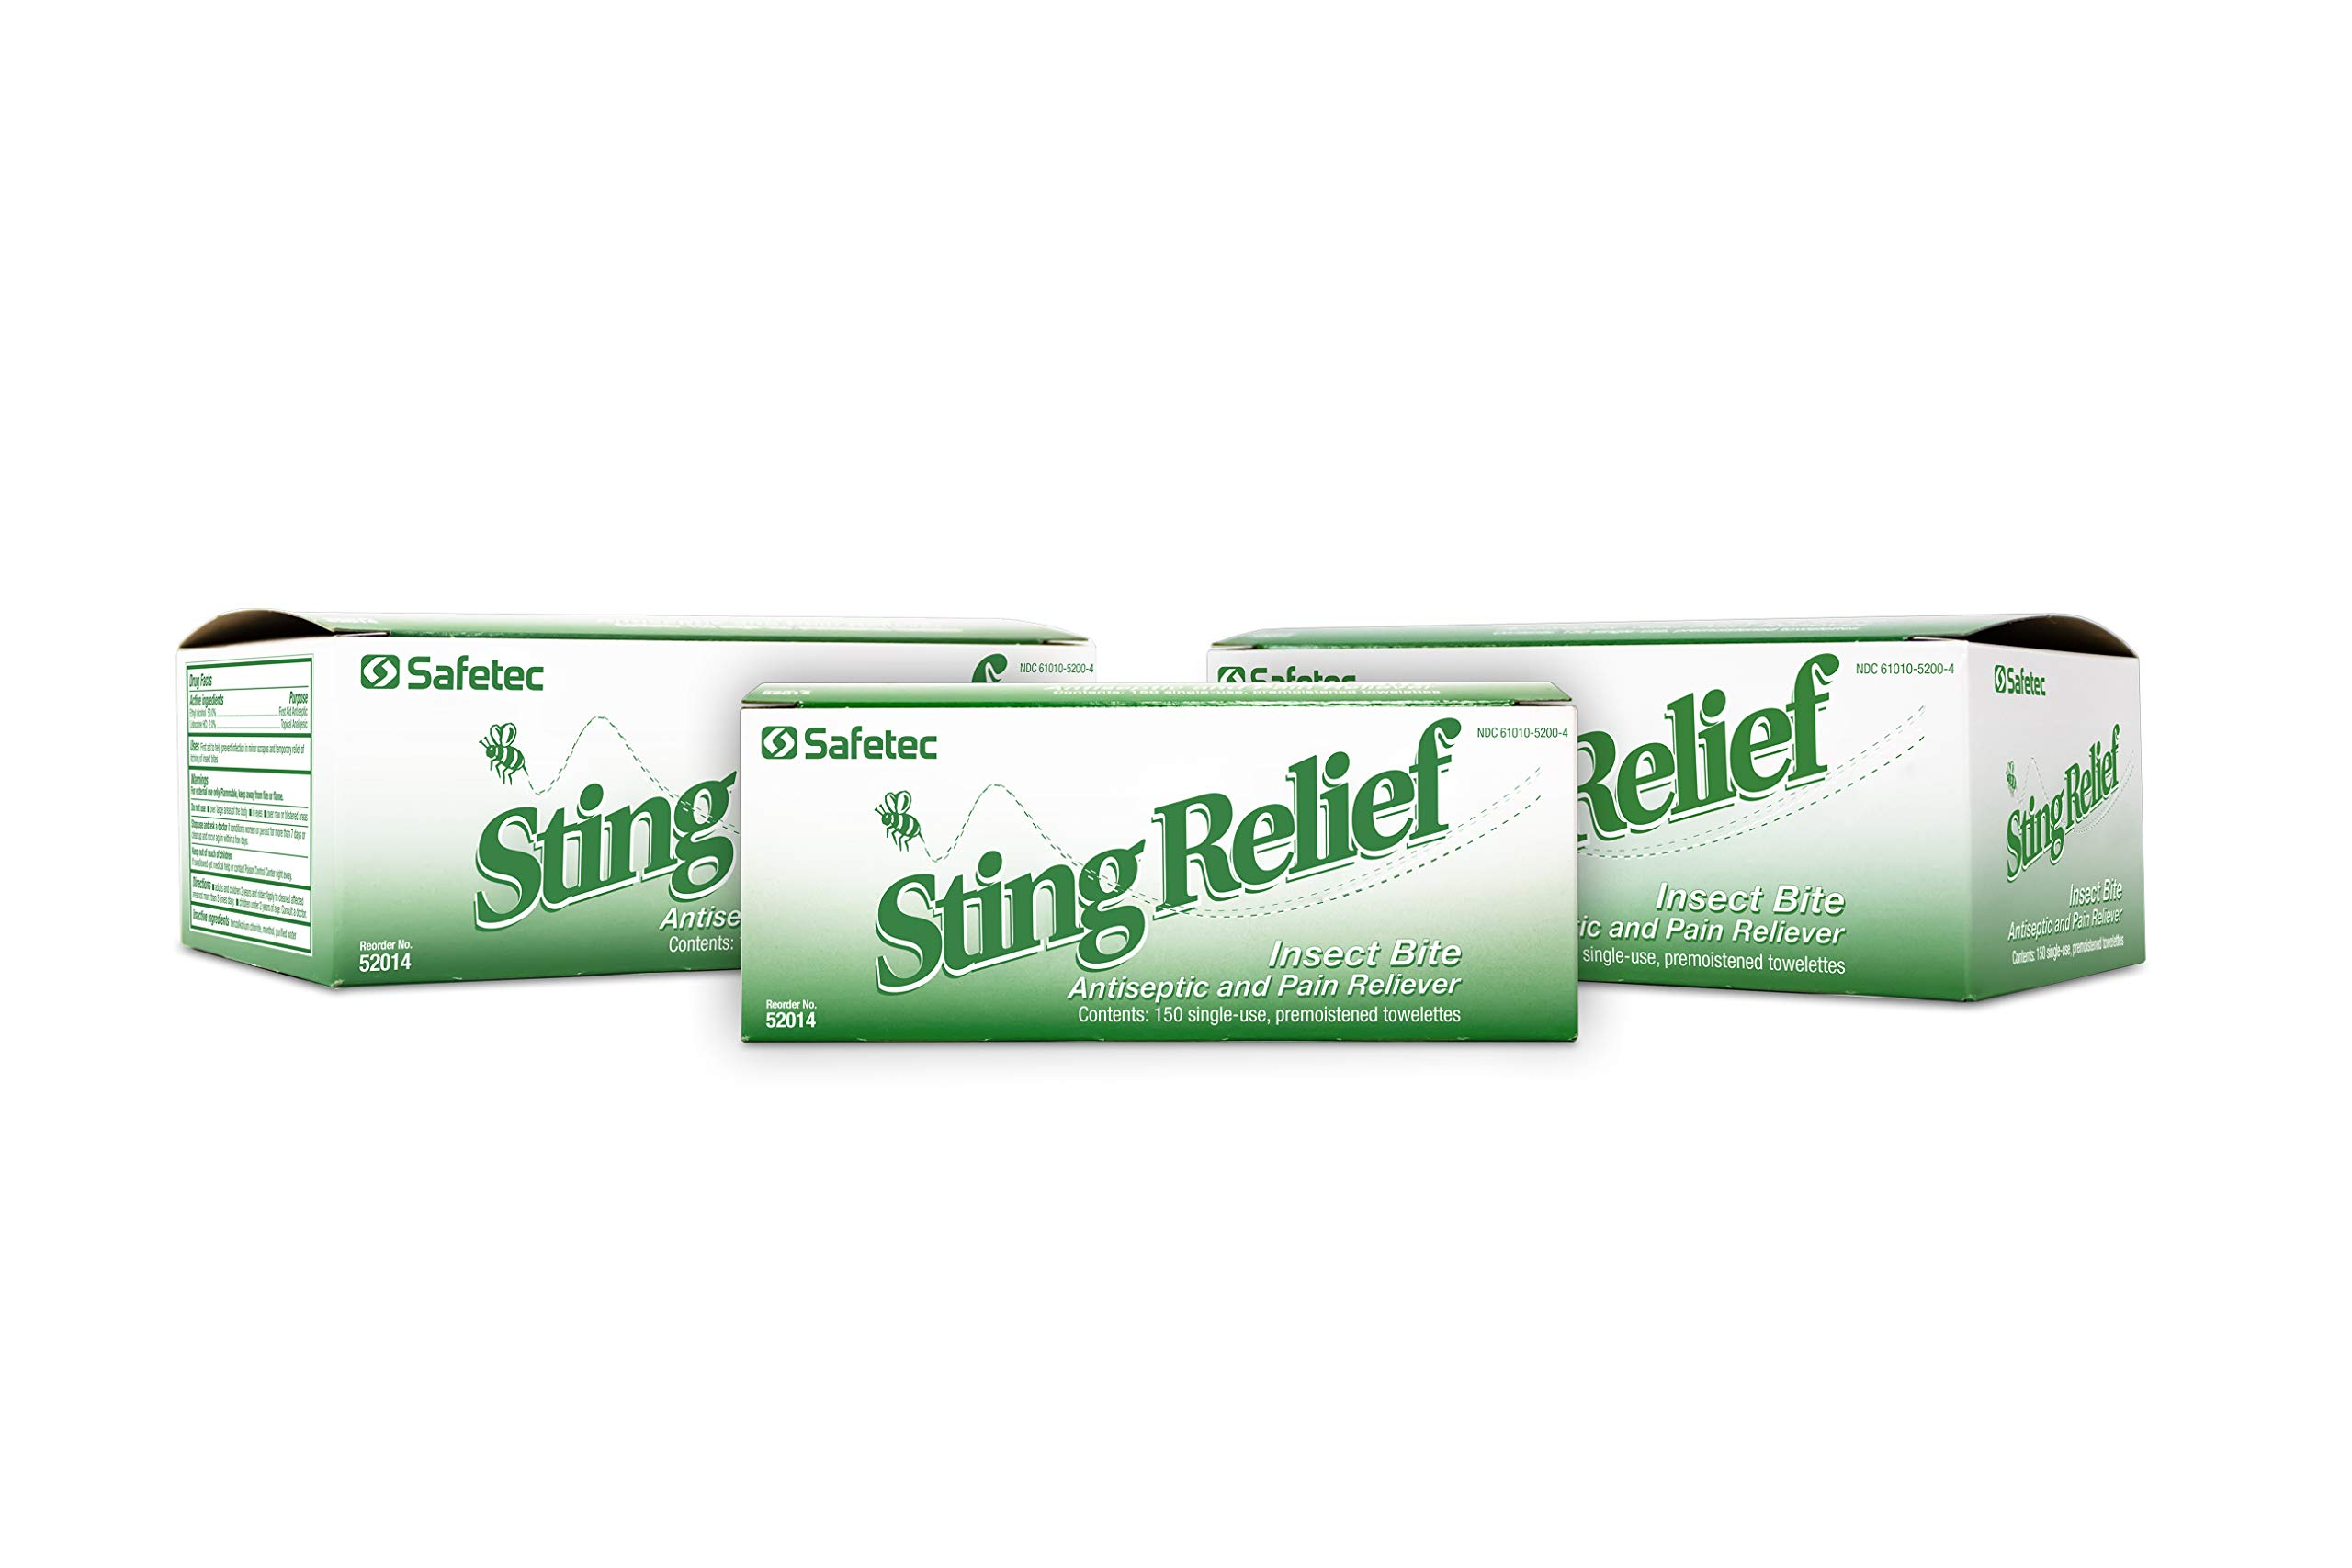 Safetec Sting Relief Wipes 150ct Box (3 Pack of 150ct Wipes - 450 Sting Wipes) for Insect Bites & Stings by Safetec